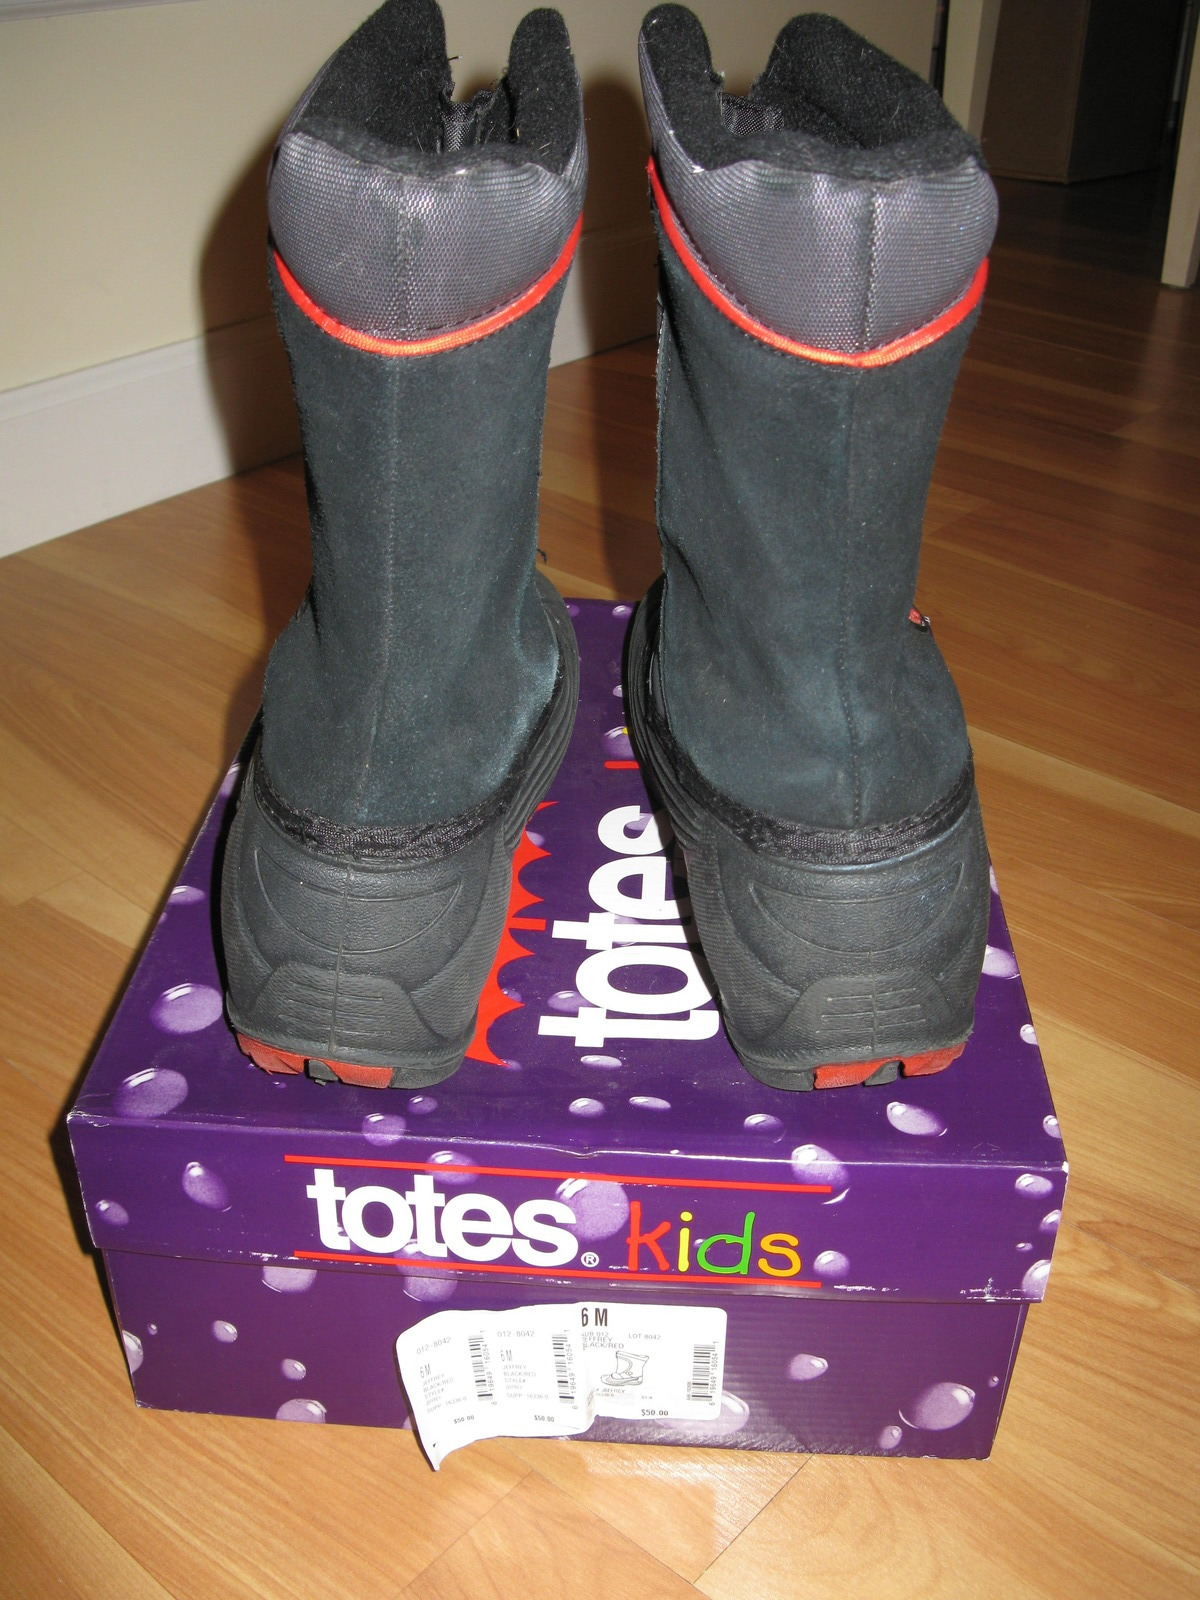 35d923da8 Totes for Kids black/red Winter Boots Zip-up Teen size 6 with original box  | Jamestown, ND